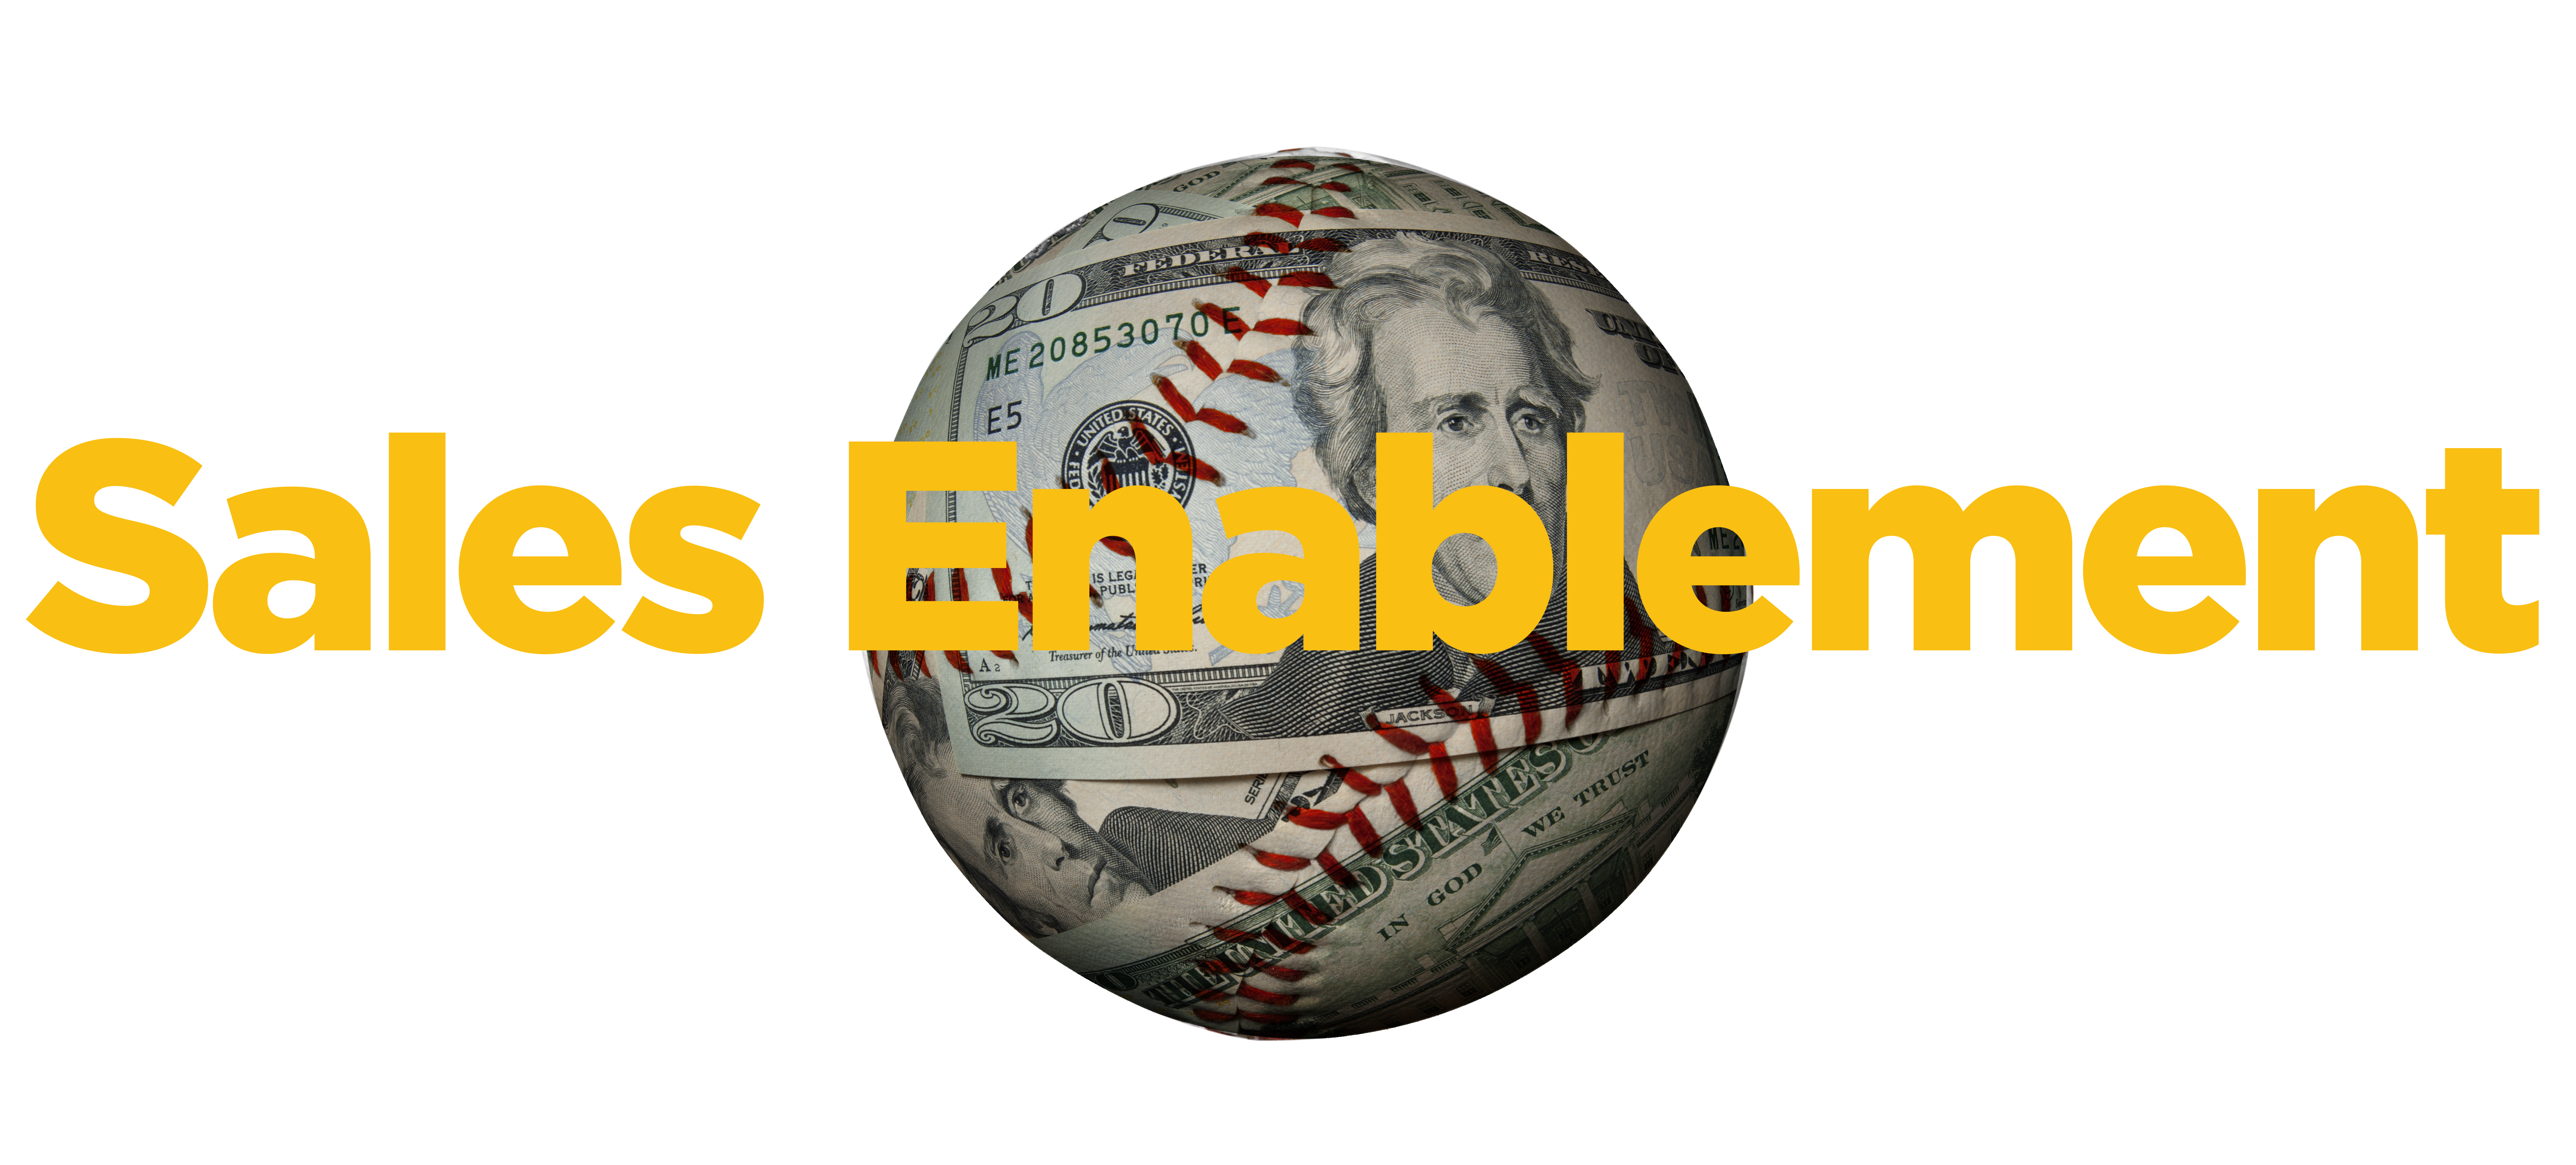 Imagine_Inbound_MoneyBall-Sales Enablement.png